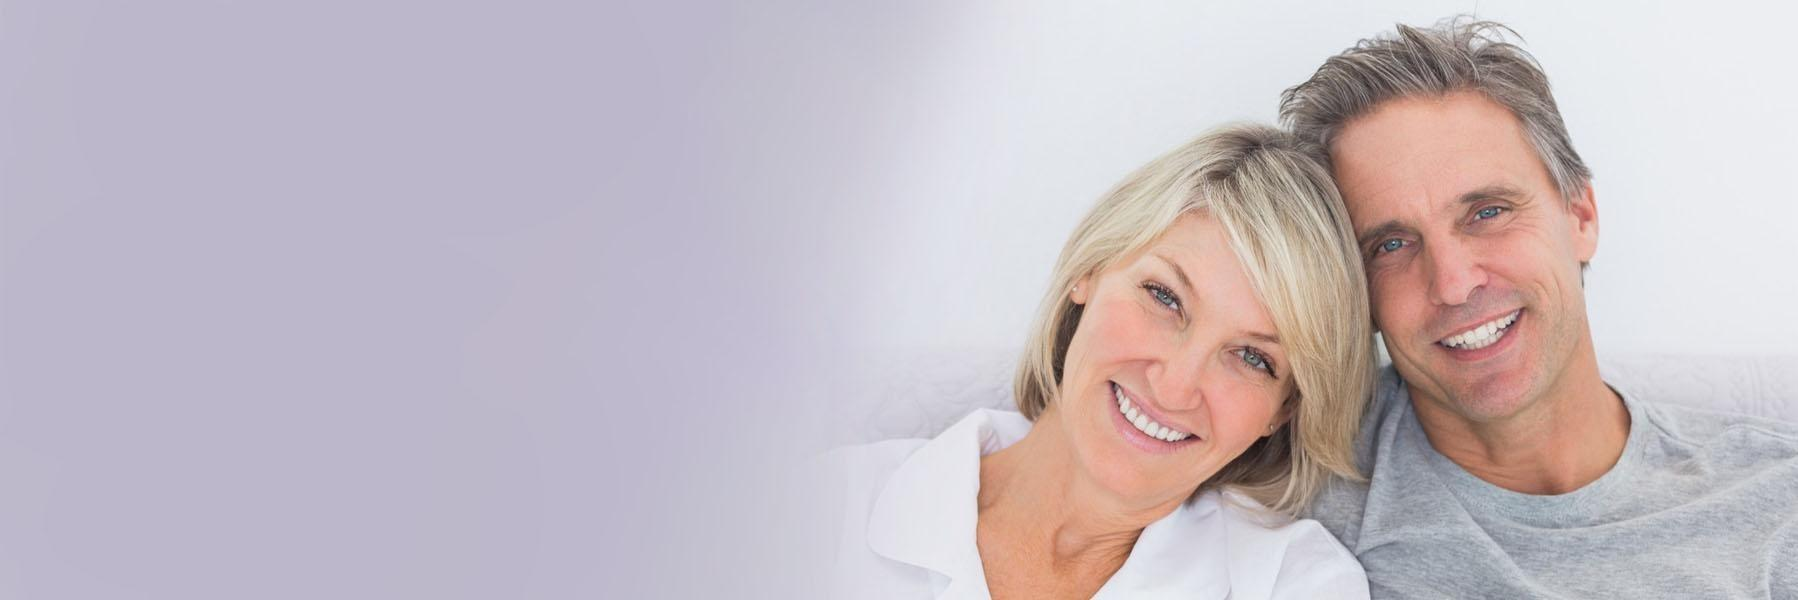 Complete and Partial Dentures in Pikesville, MD banner image